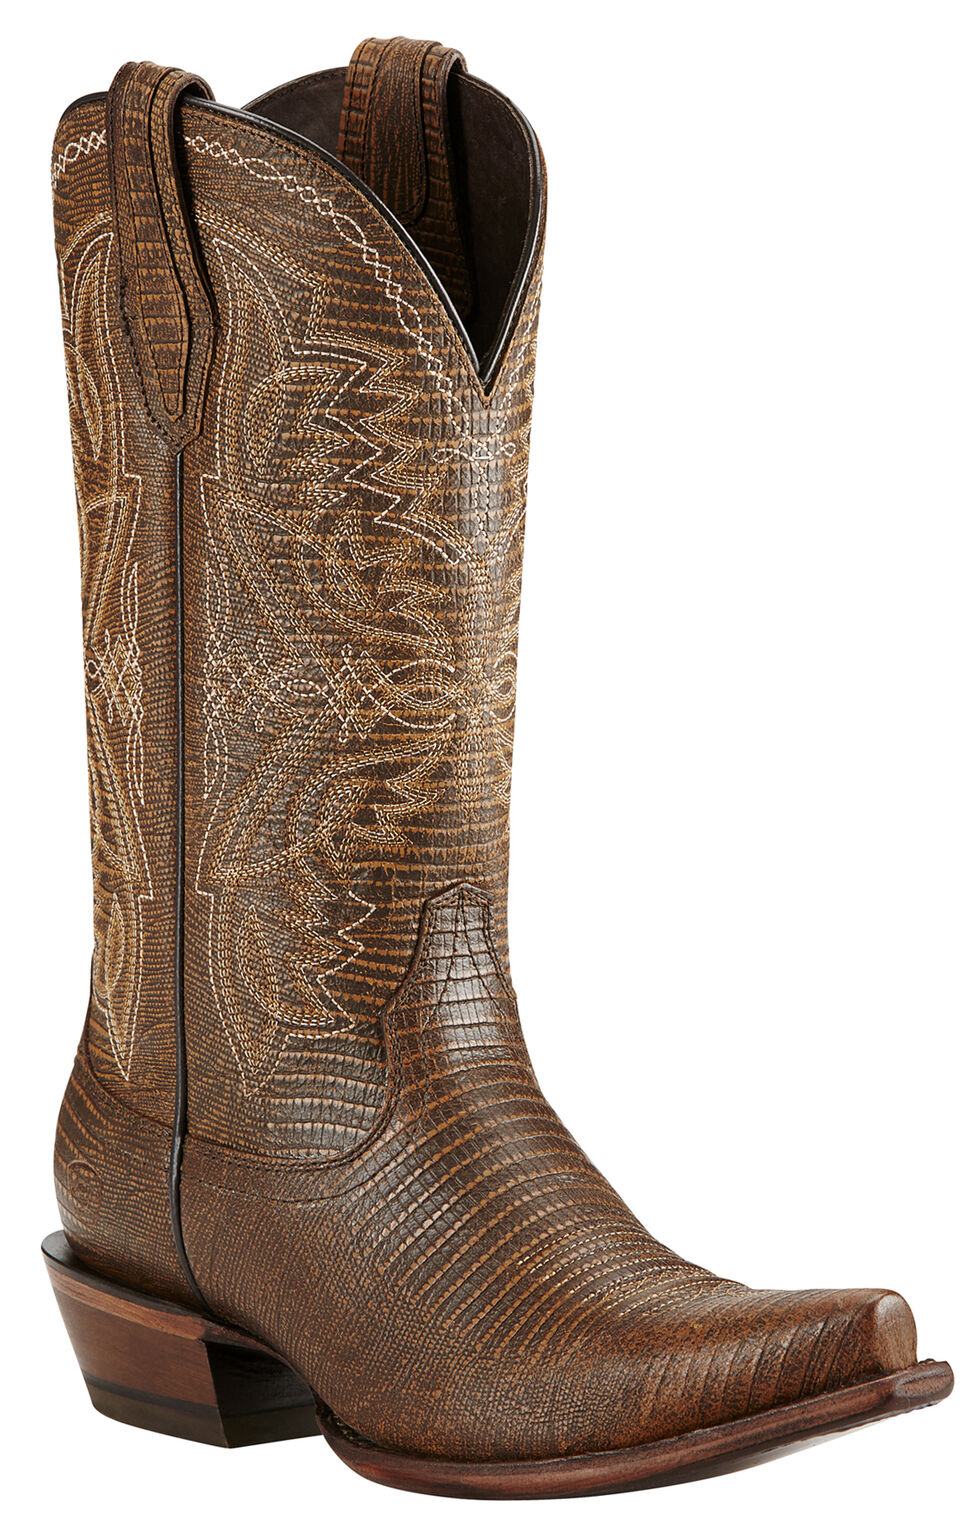 Ariat Alamar Lizard Print Cowgirl Boots - Snip Toe, Chocolate, hi-res